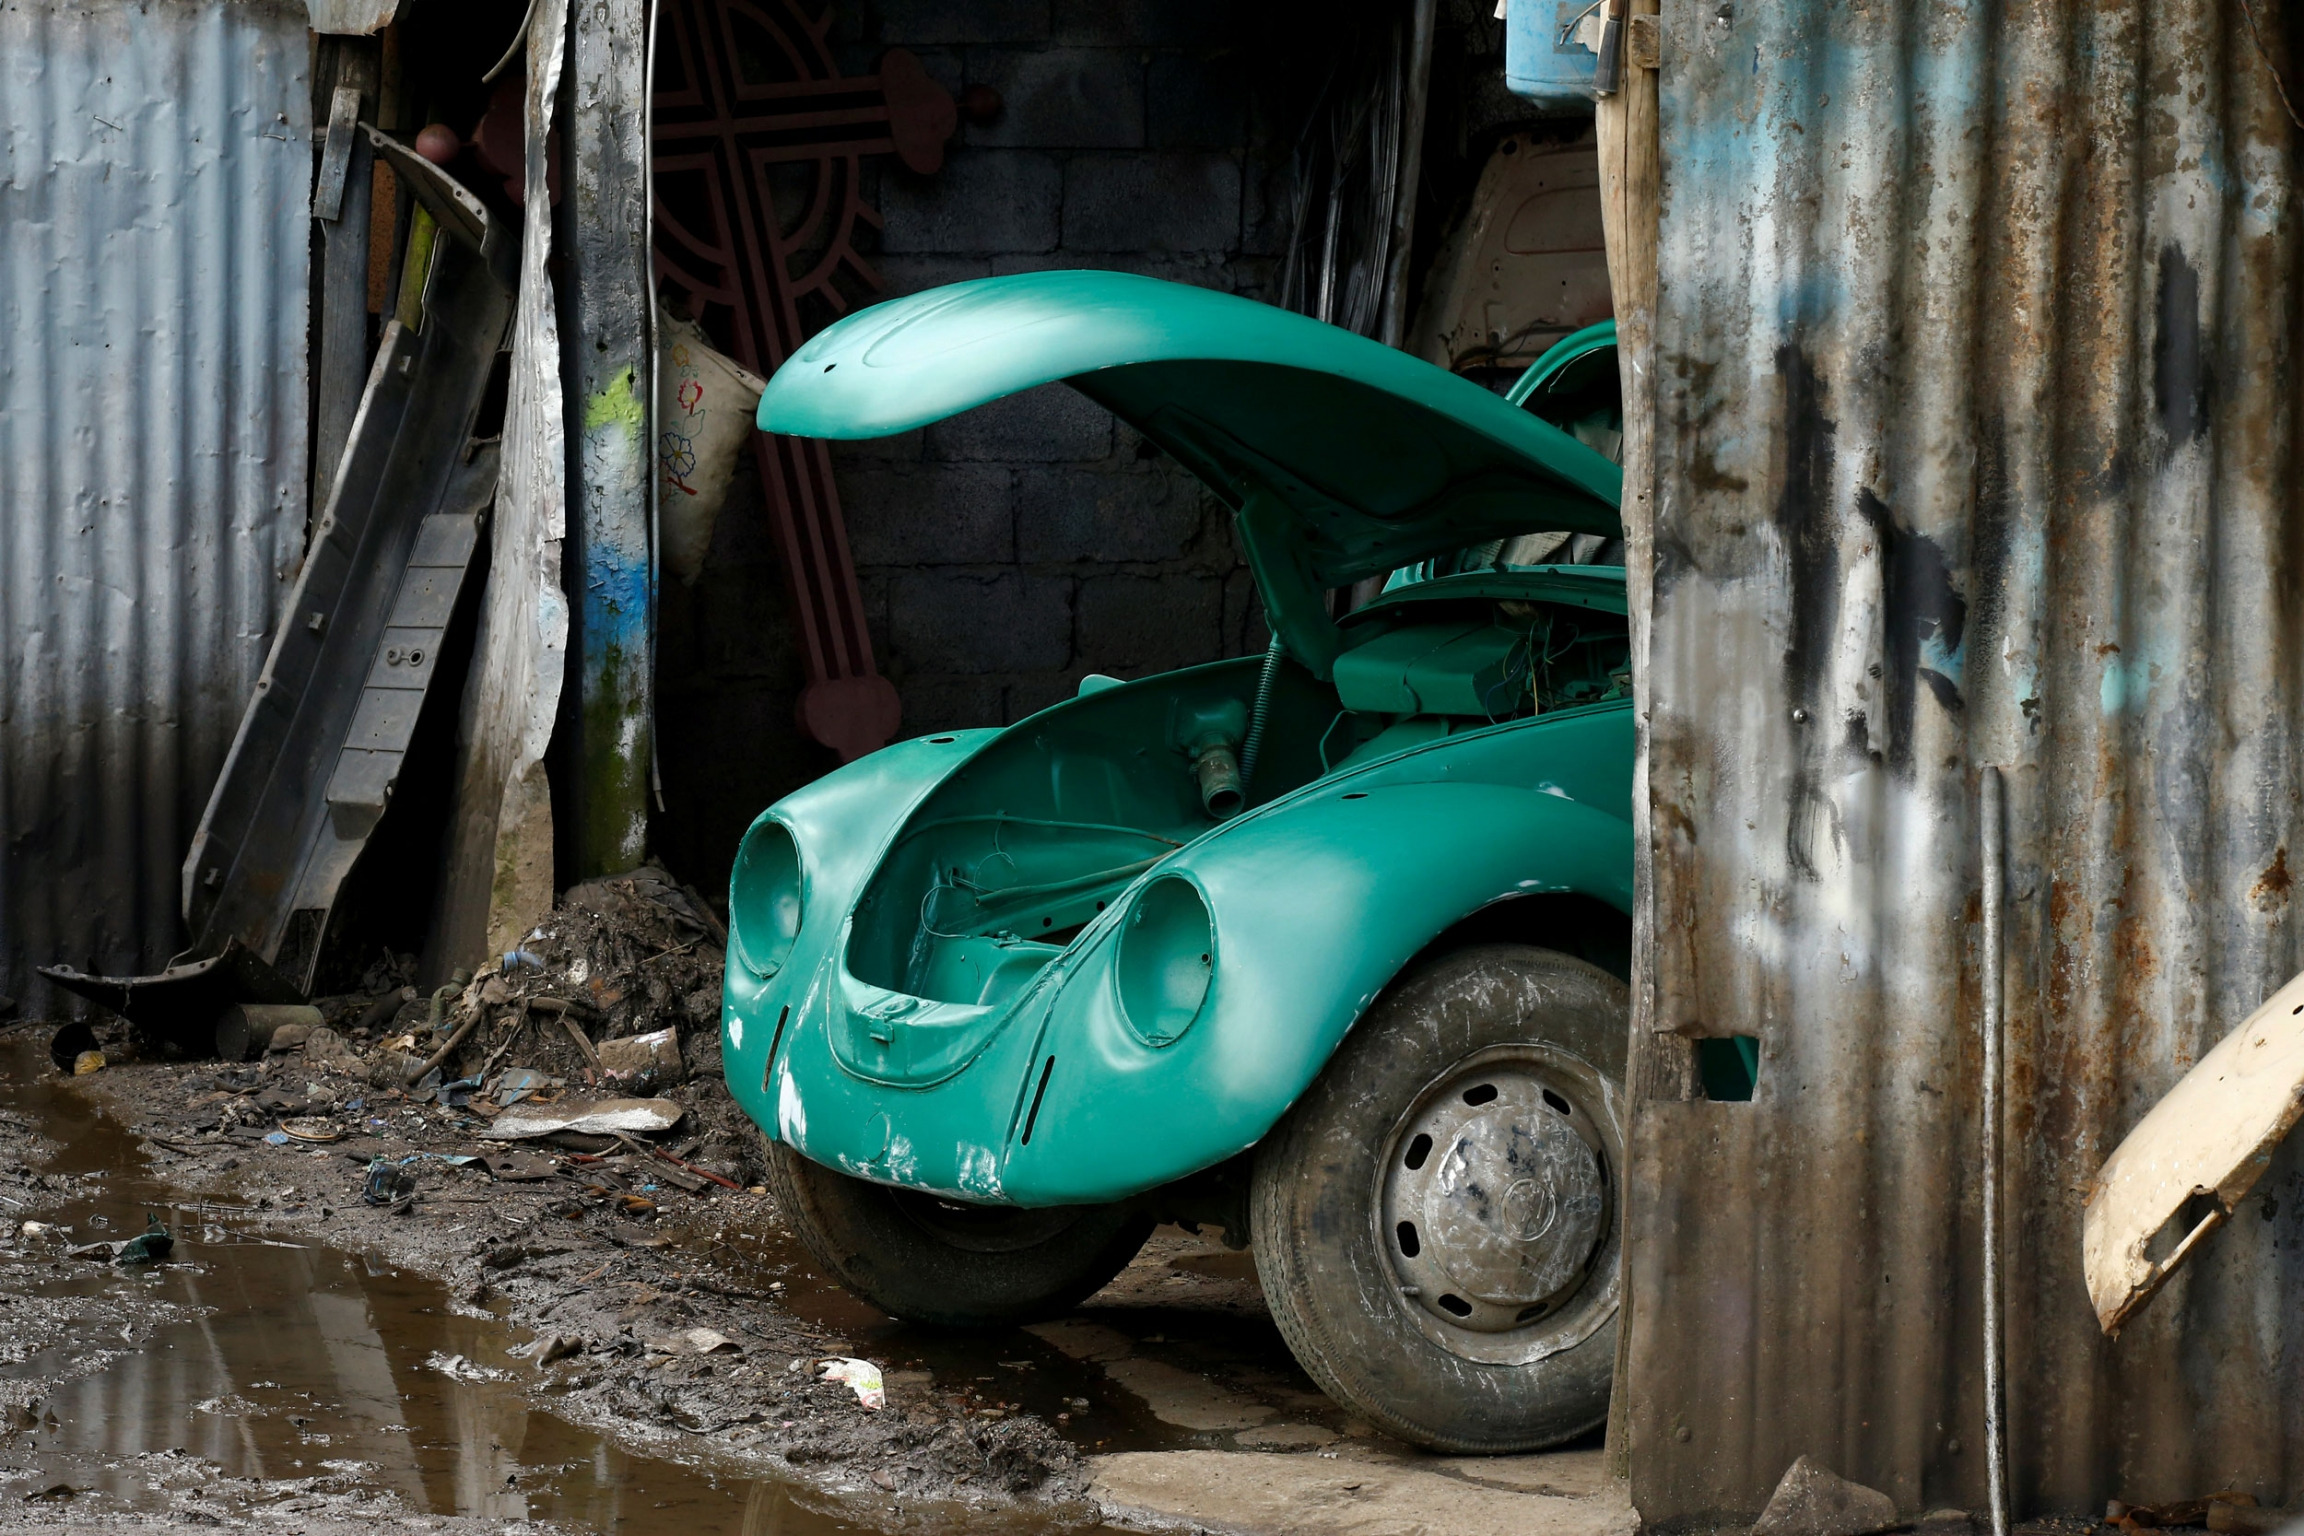 The front end of a Volkswagen Beetle is shown sticking out from a metal garage.